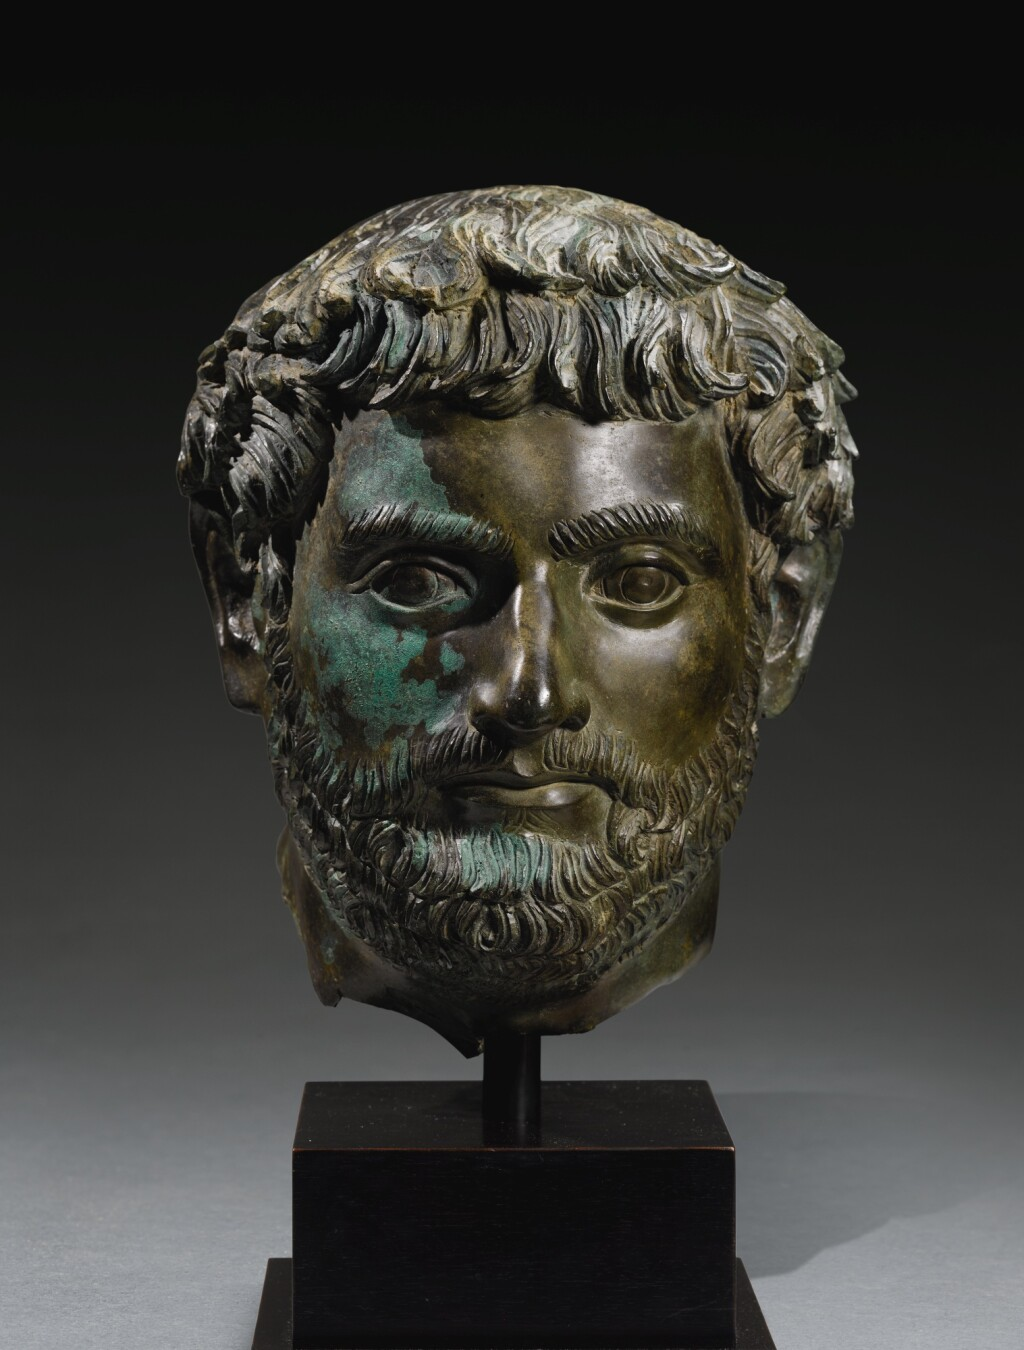 A ROMAN BRONZE PORTRAIT HEAD OF A MAN, HADRIANIC, CIRCA EARLY 2ND CENTURY A.D.